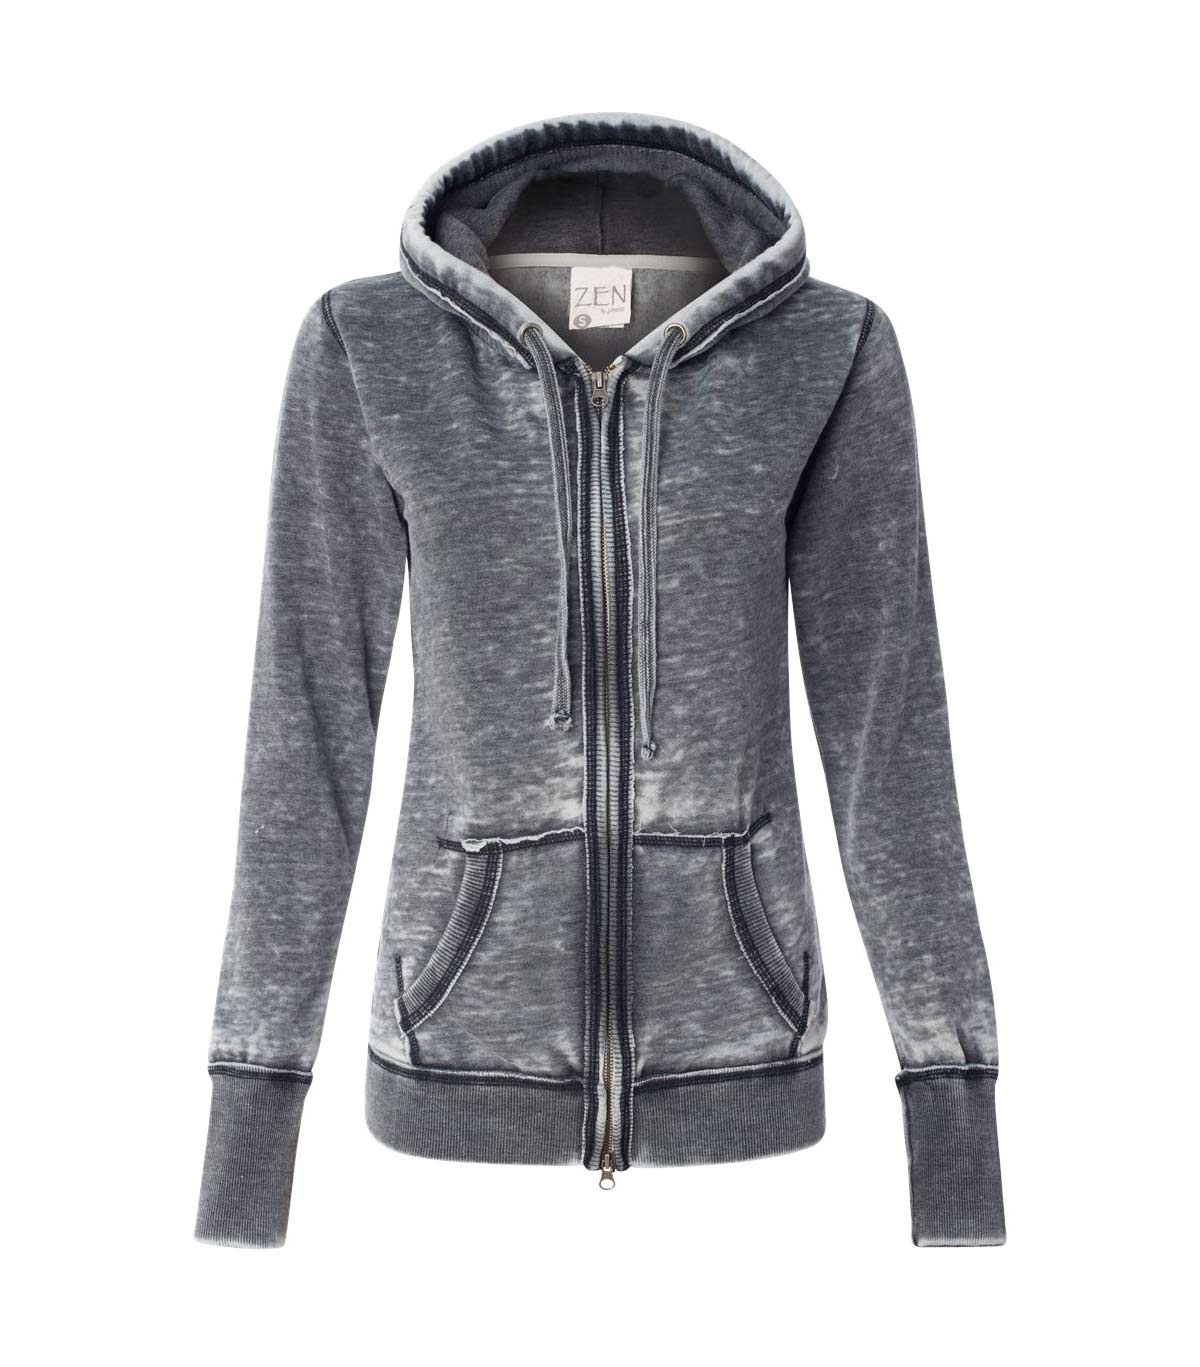 J. America Ladies Zen Fleece Hooded Sweatshirt